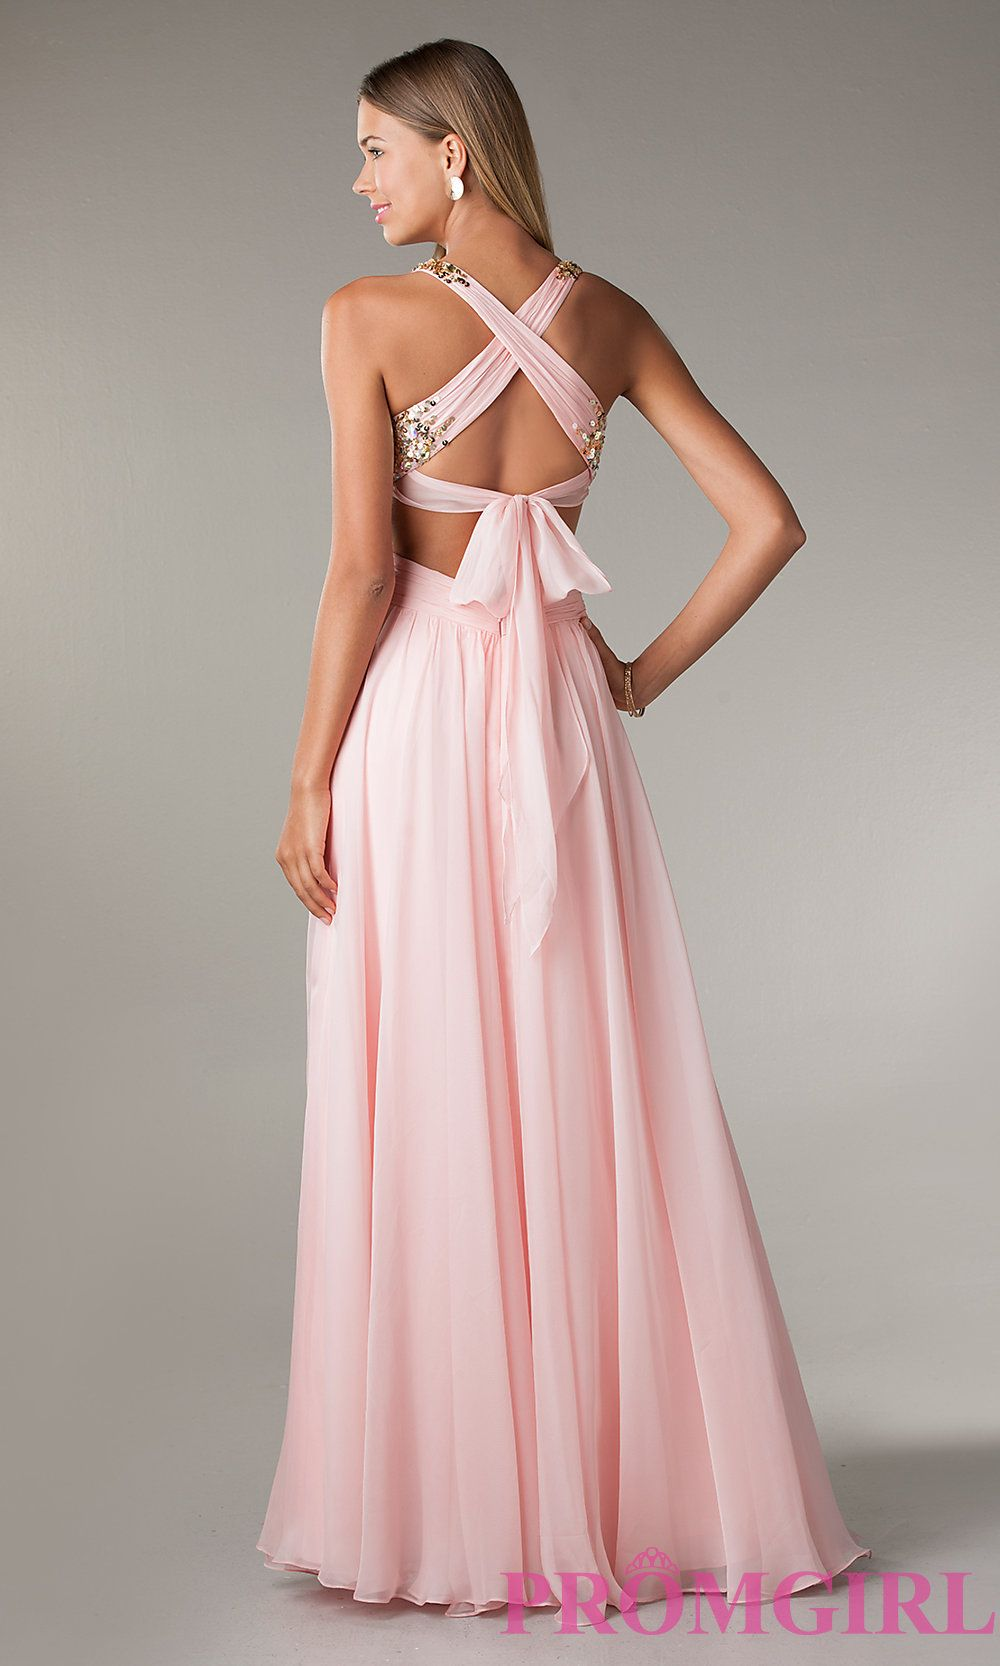 Long Cut Out Prom Dresses, Flirt Long Gowns for Prom- PromGirl ...